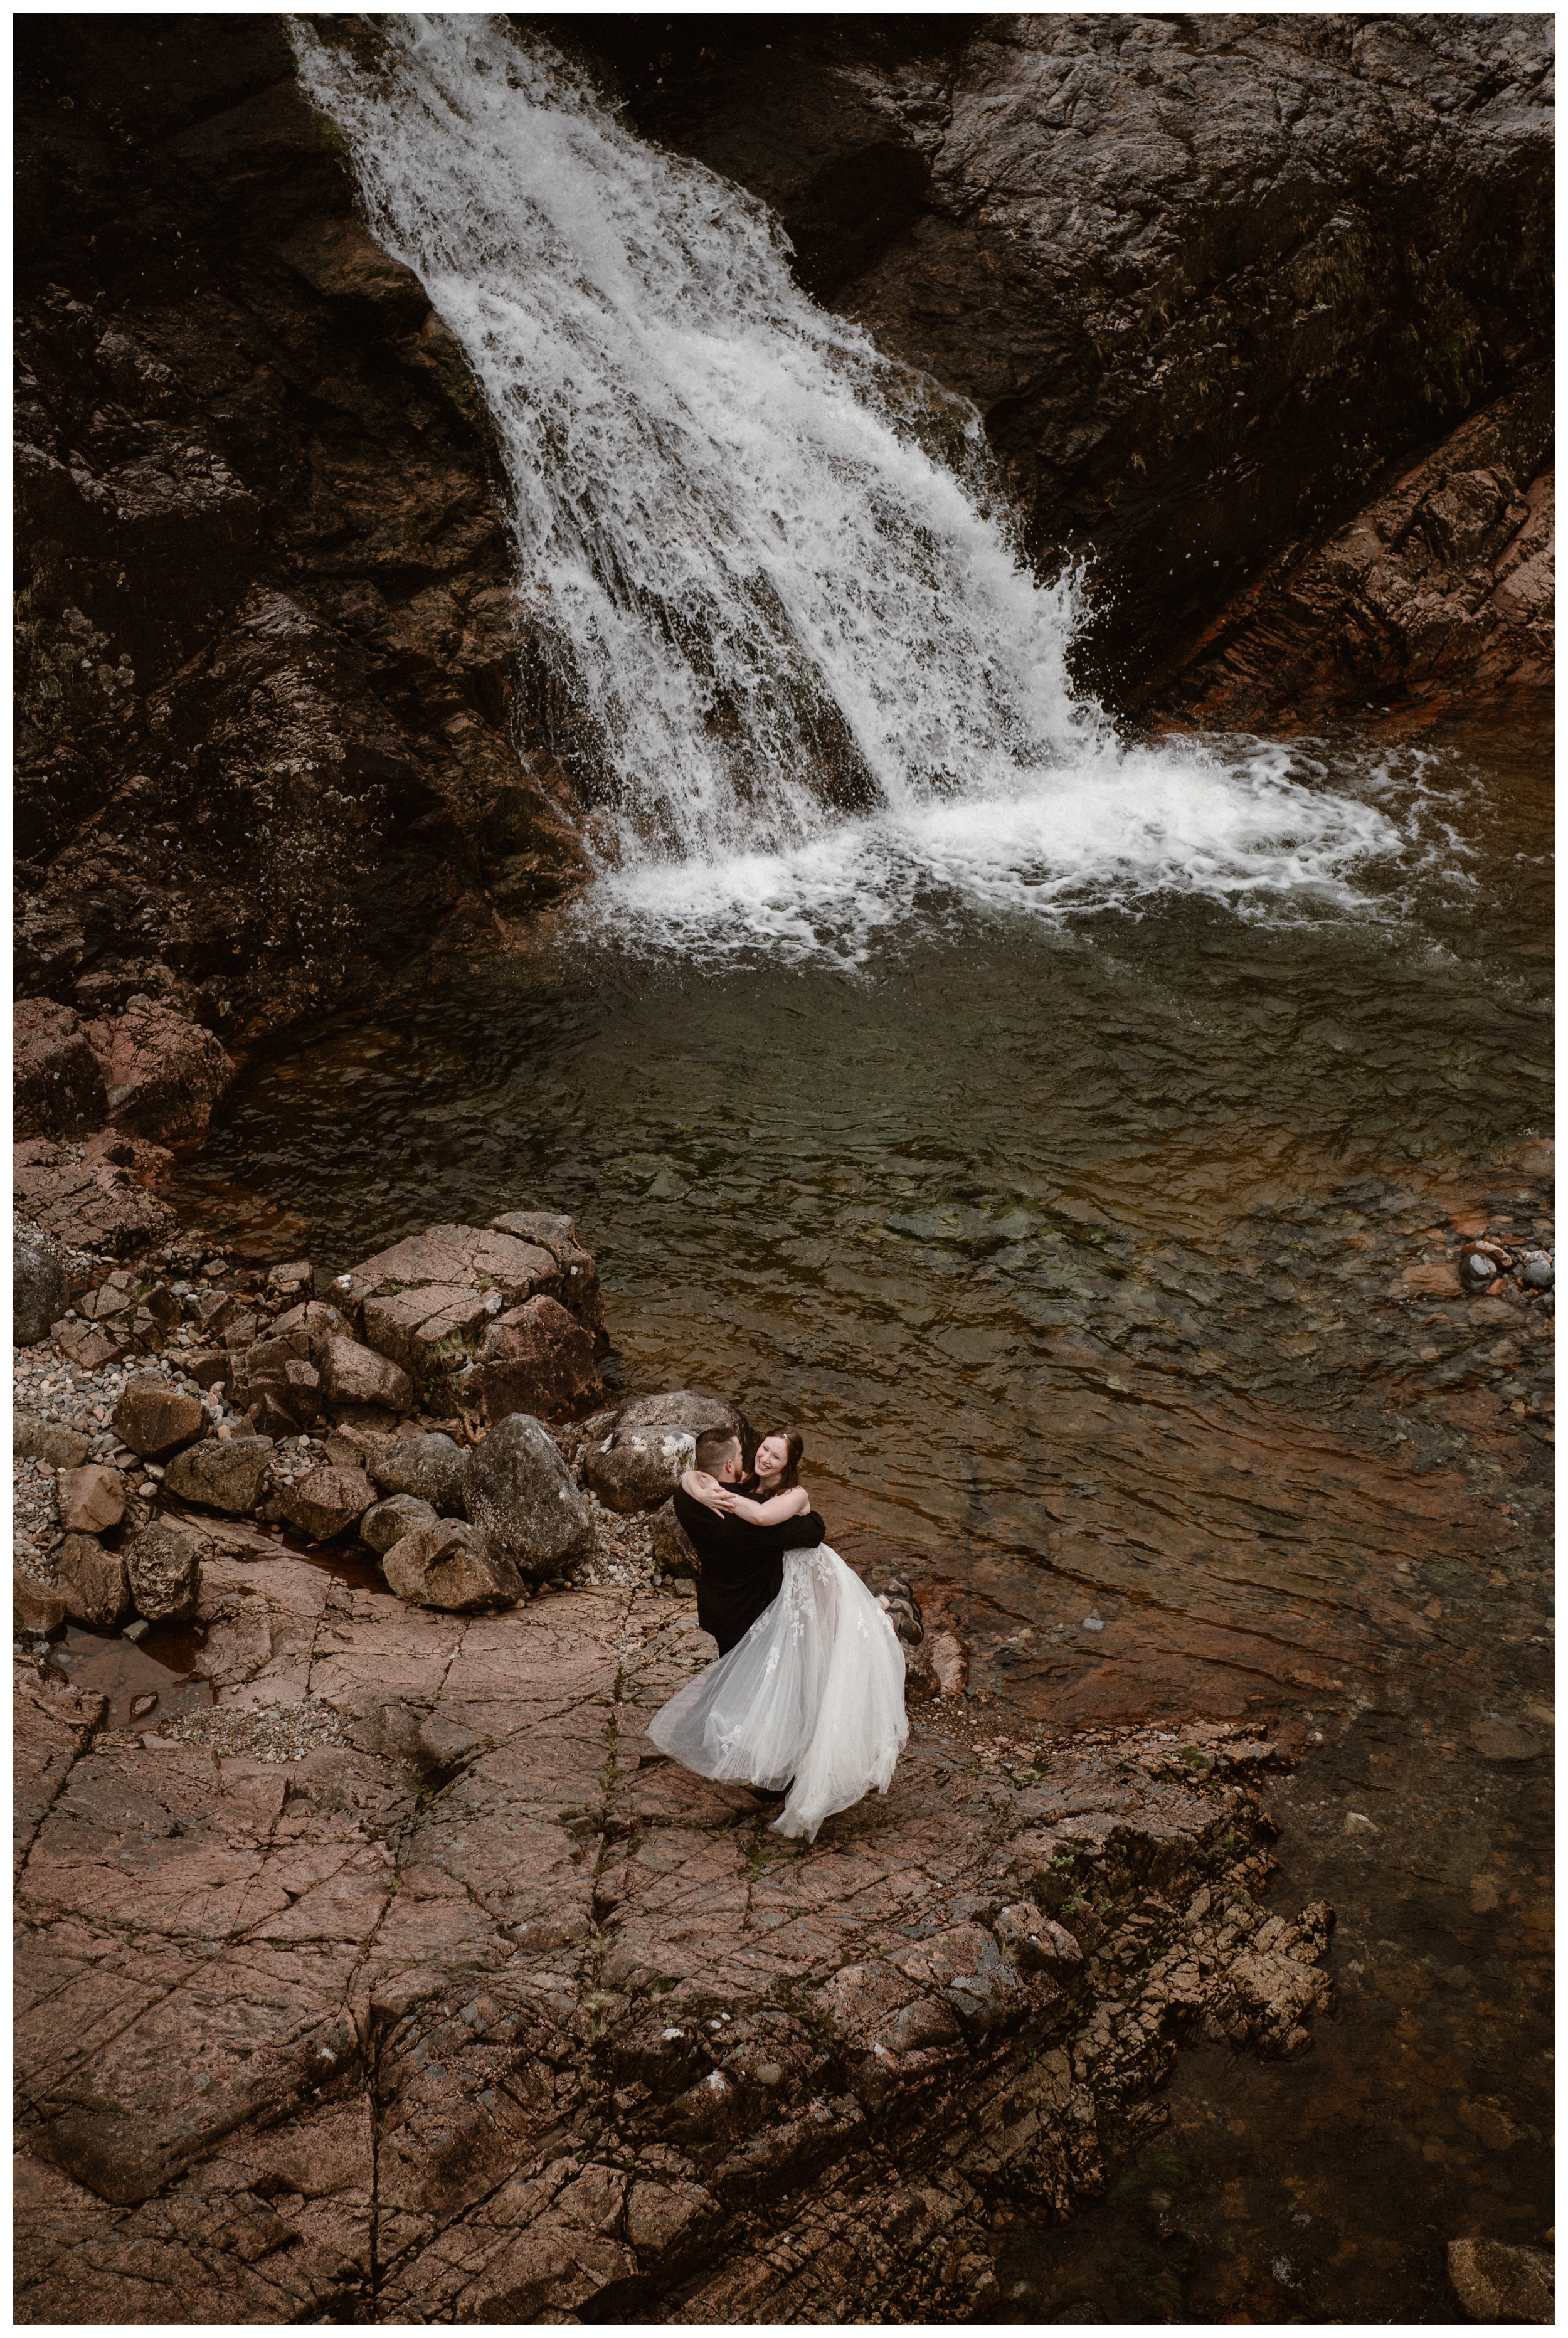 Daniel and Elissa celebrate their recent self solemnizing adventure elopement ceremony in the Scottish Highlands at the base of a waterfall. Photo by Maddie Mae, Adventure Instead.